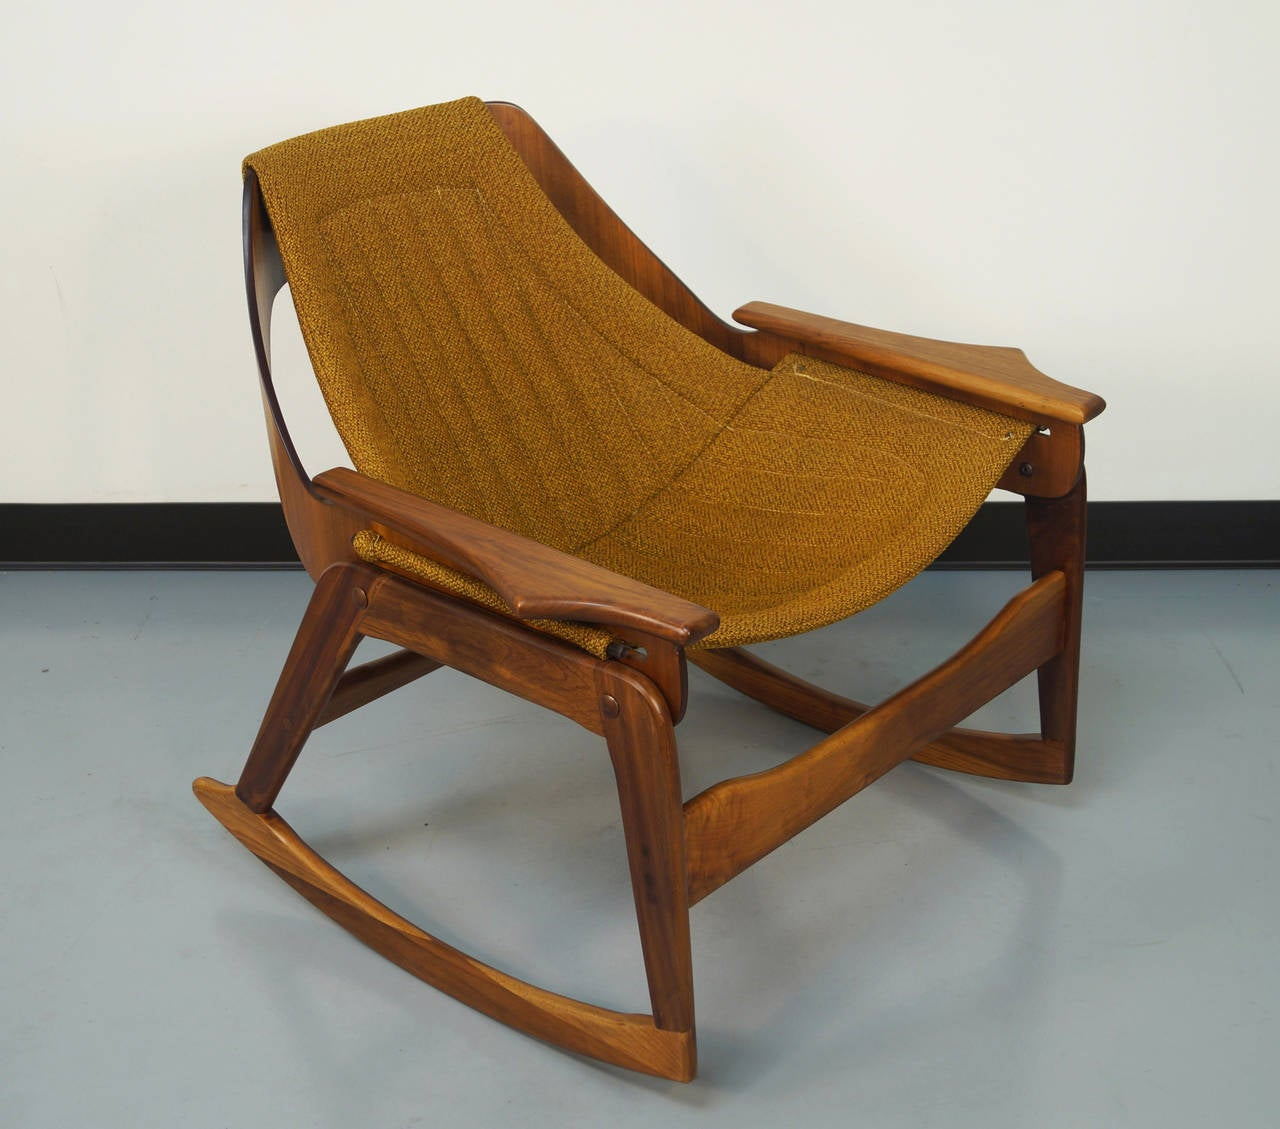 sling chairs for sale pedicure chair parts suppliers rocking by jerry johnson at 1stdibs